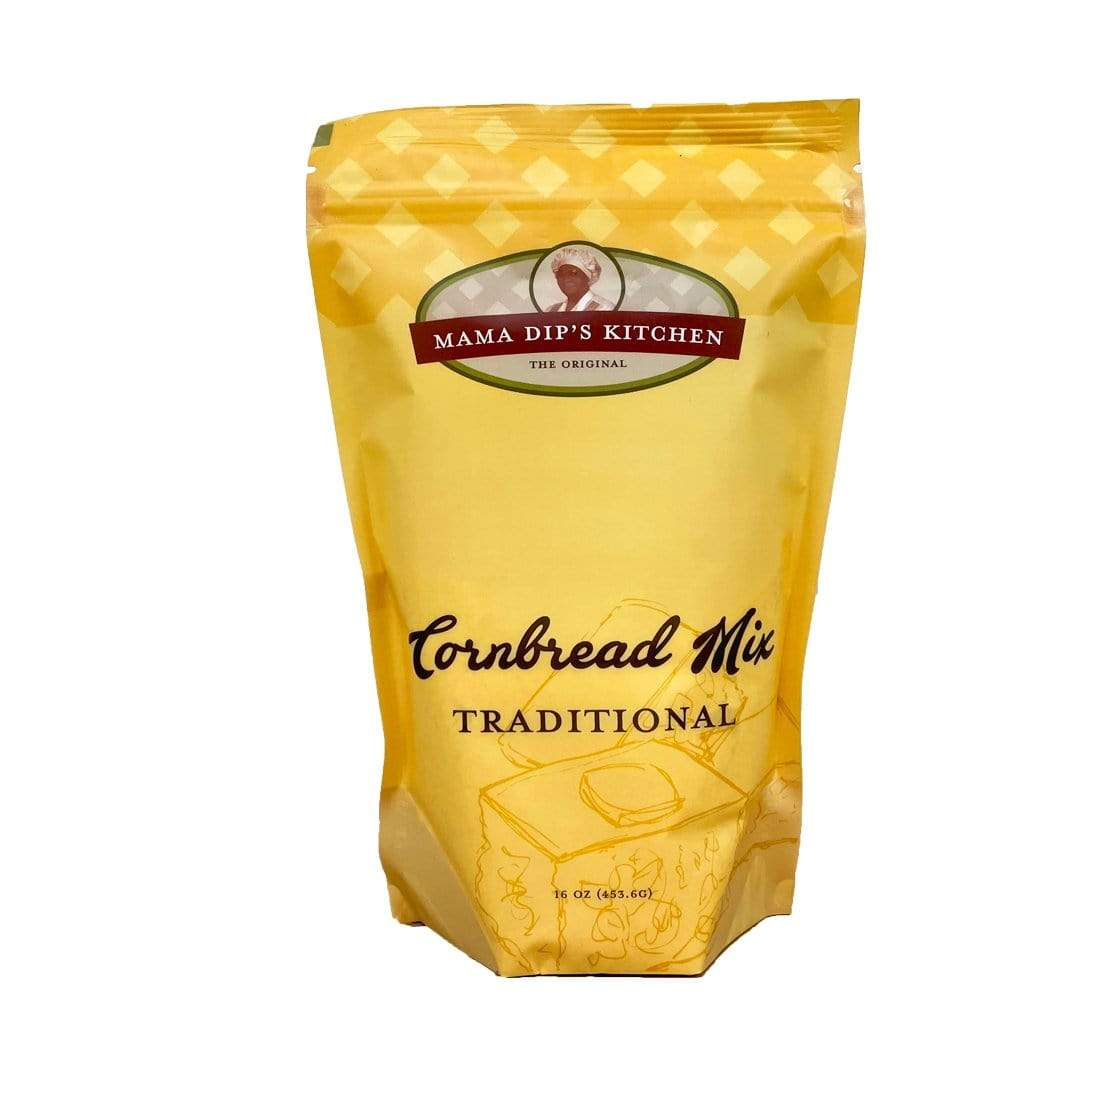 Mama Dip's Mama Dip's Traditional Cornbread Mix 16 oz